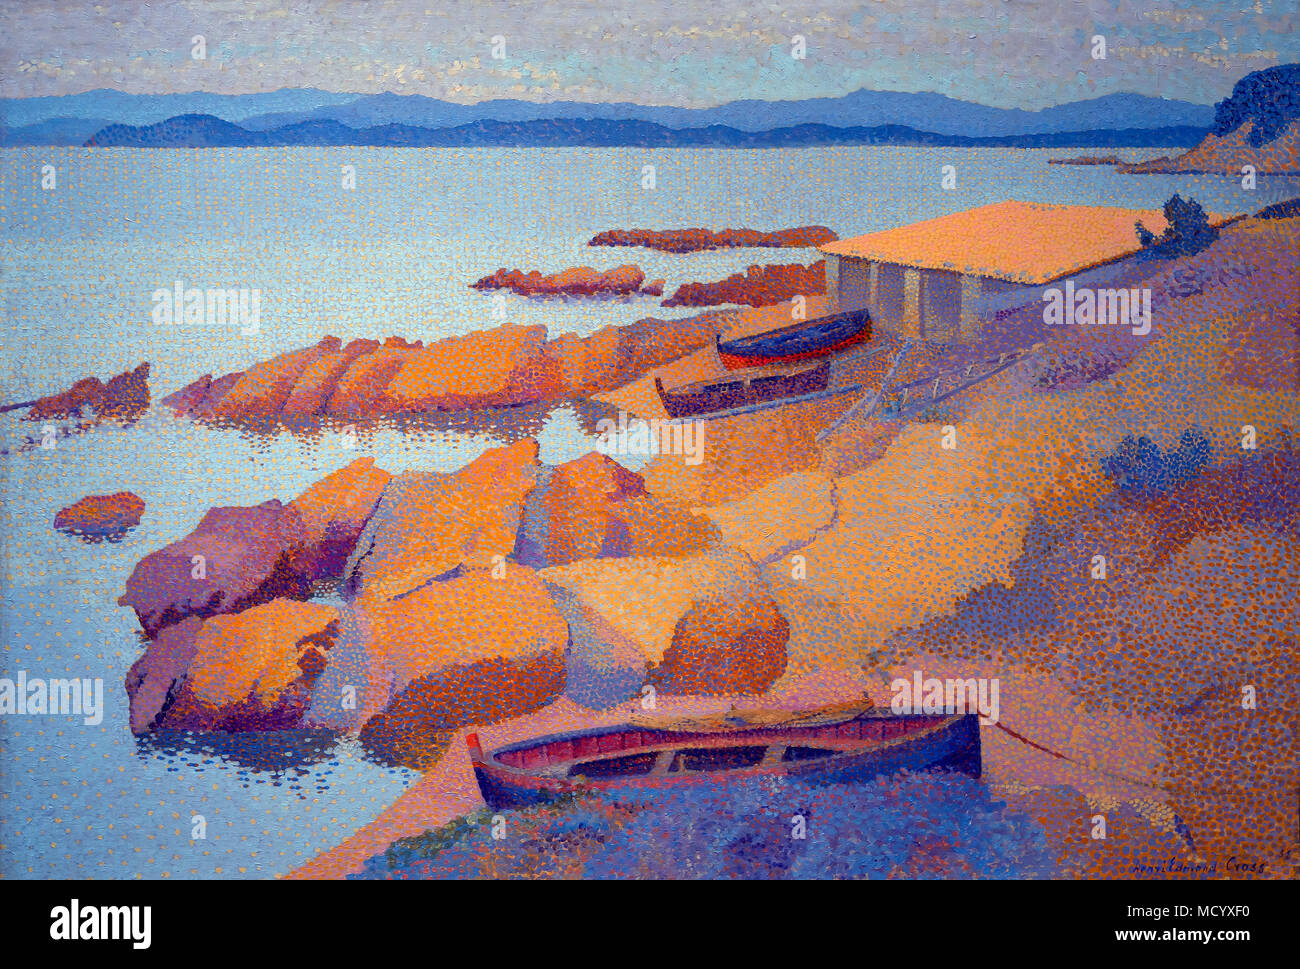 Coast Near Antibes, Henri Edmond Cross, 1891,National Gallery of Art, Washington DC, USA, North America - Stock Image